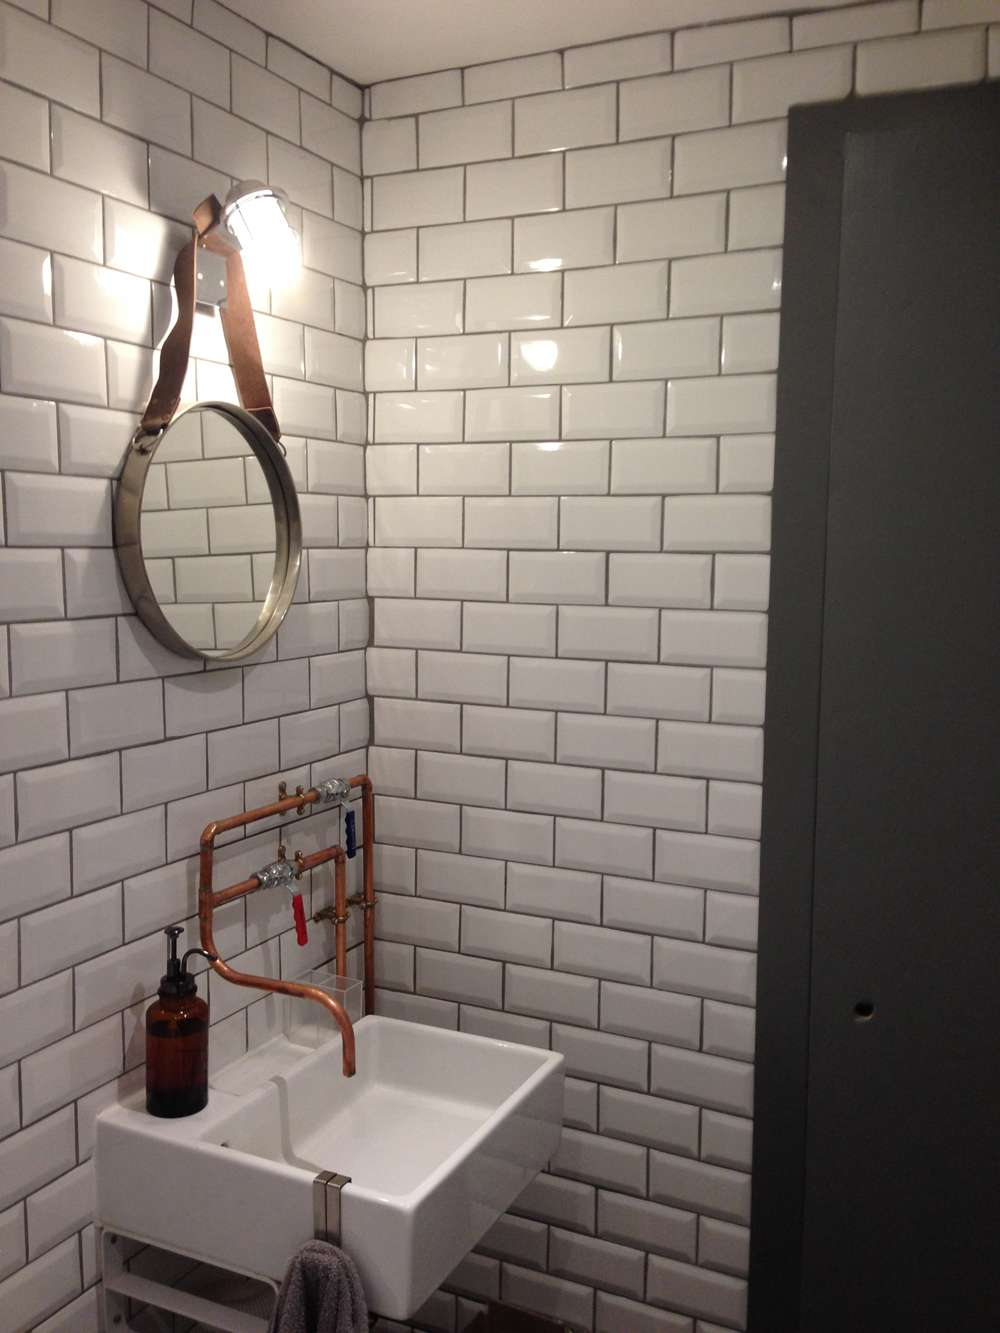 Metro tiles bathroom ideas with luxury trend in australia for Bathroom tile trends 2016 uk